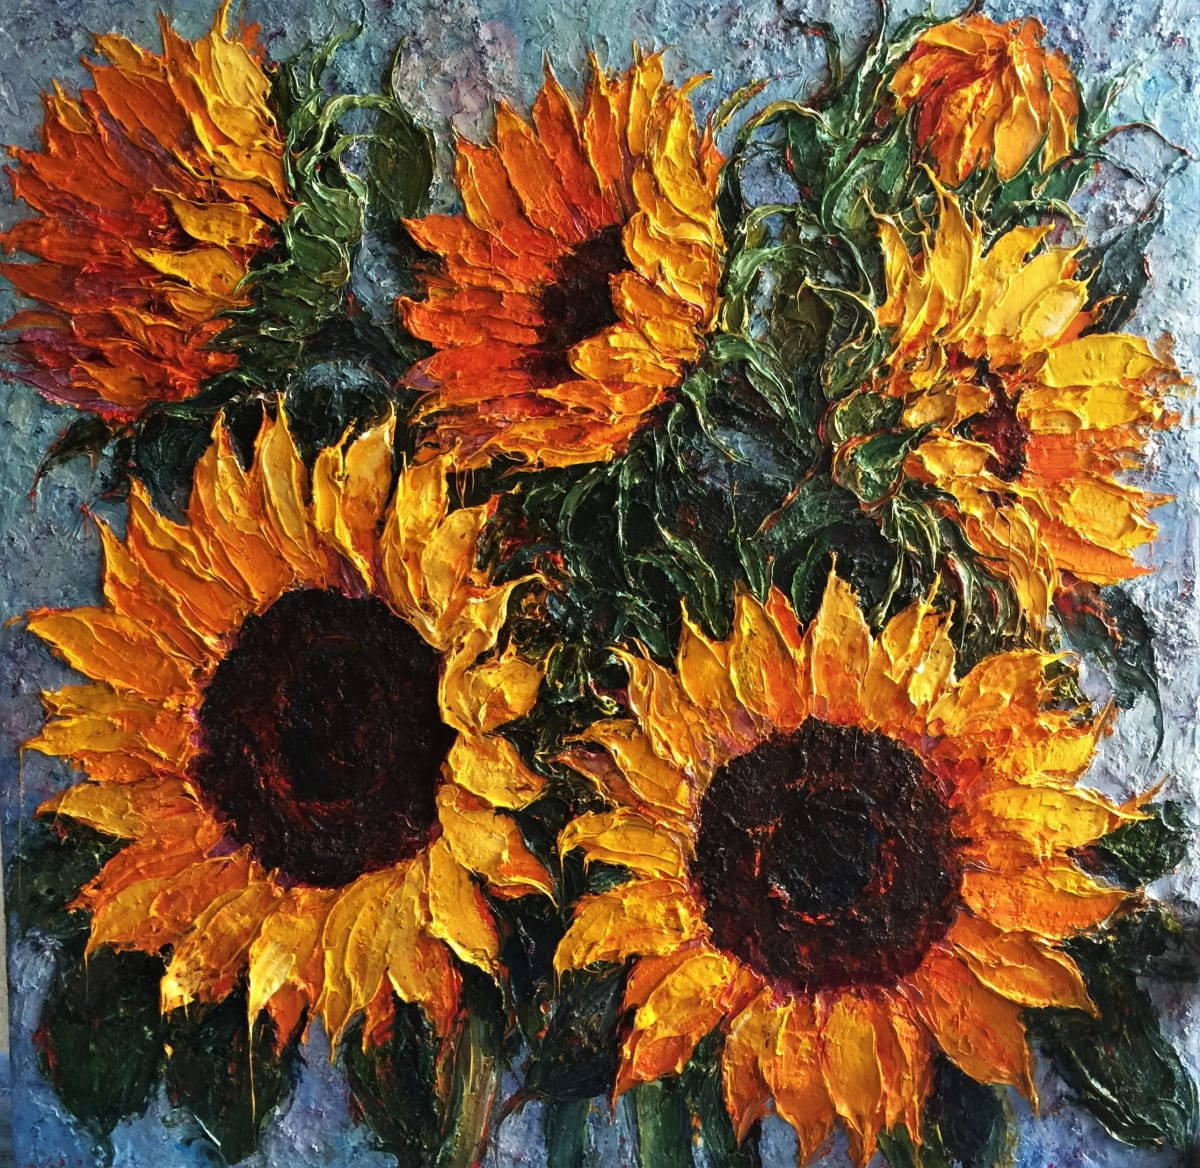 Lana Okiro, Sunflowers